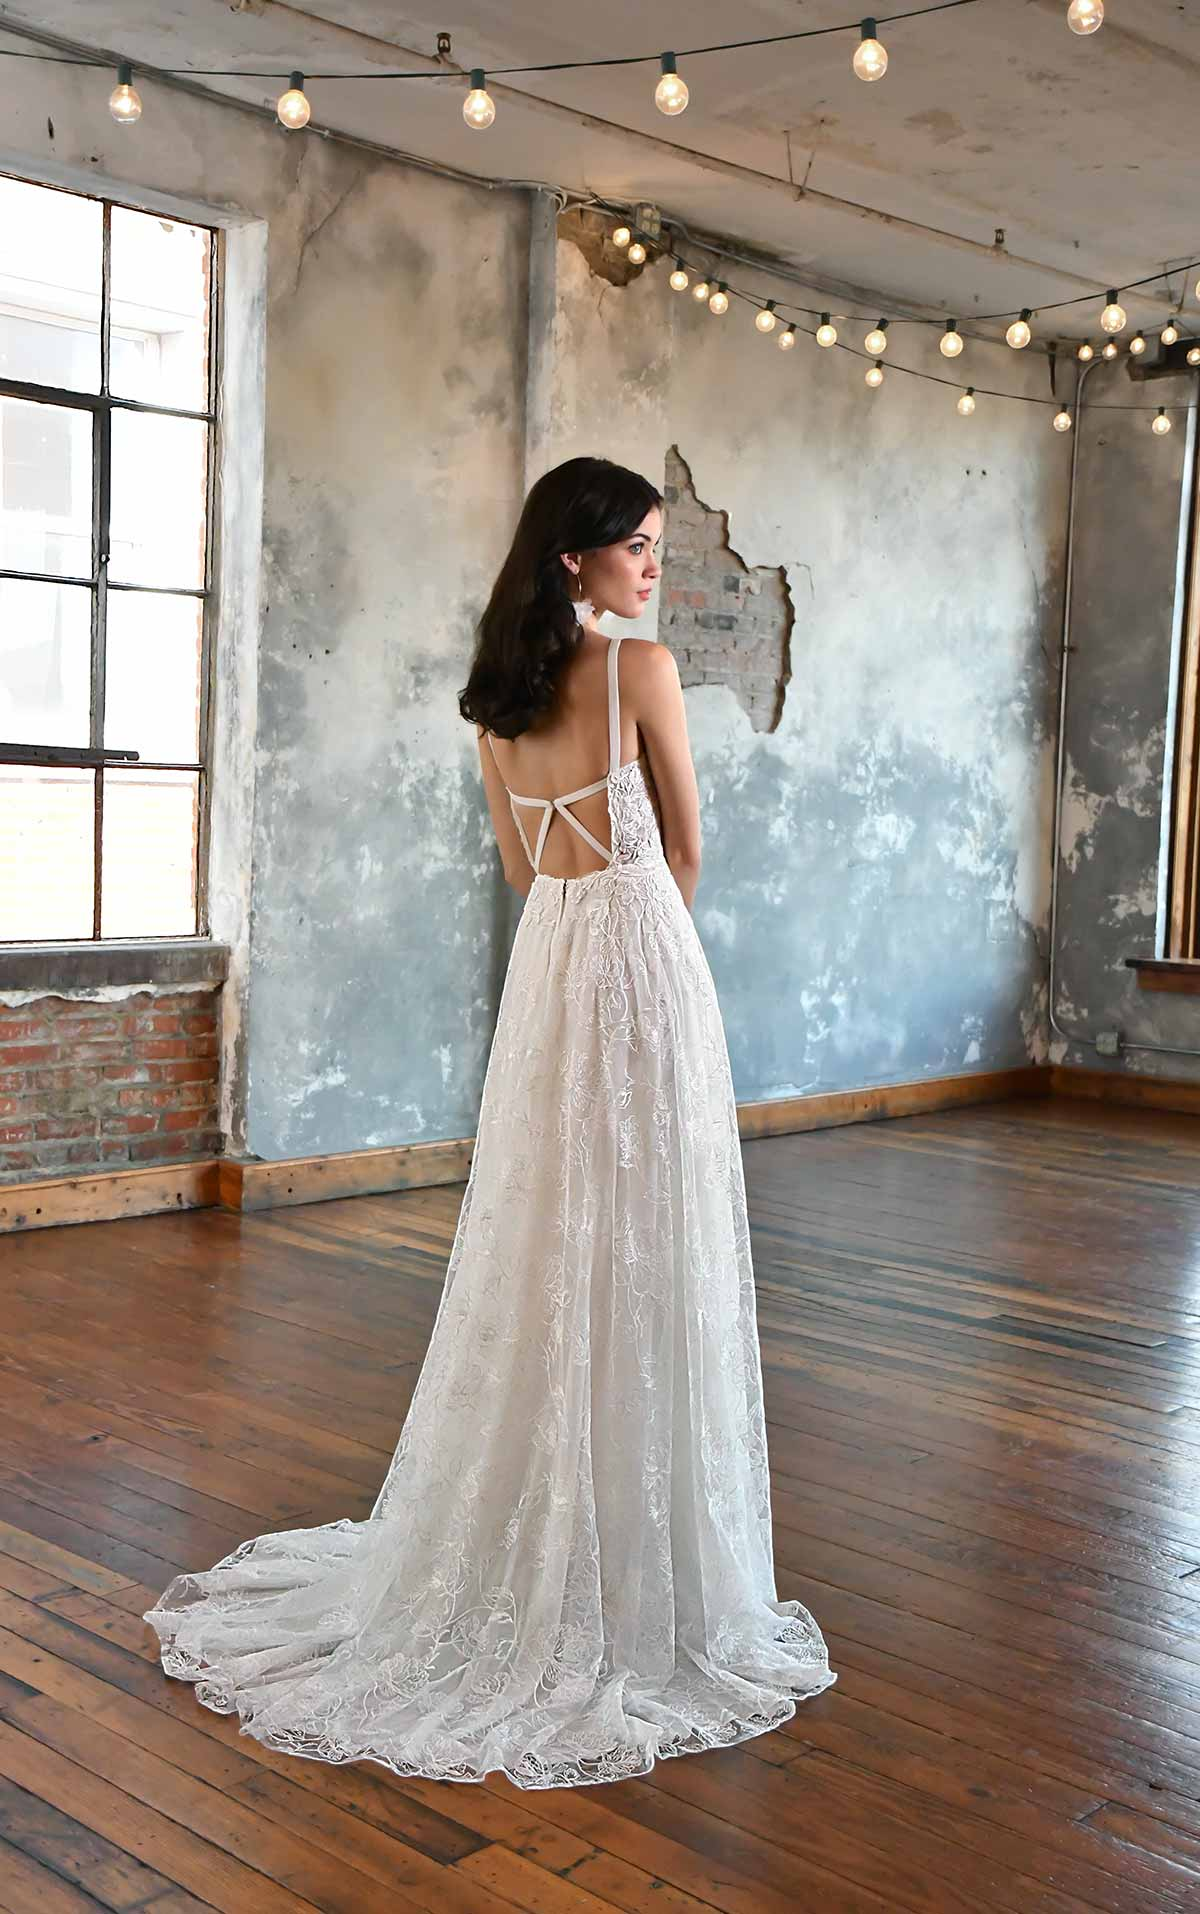 RUMUR Floral Lace Wedding Gown with Defined Bustline by All Who Wander